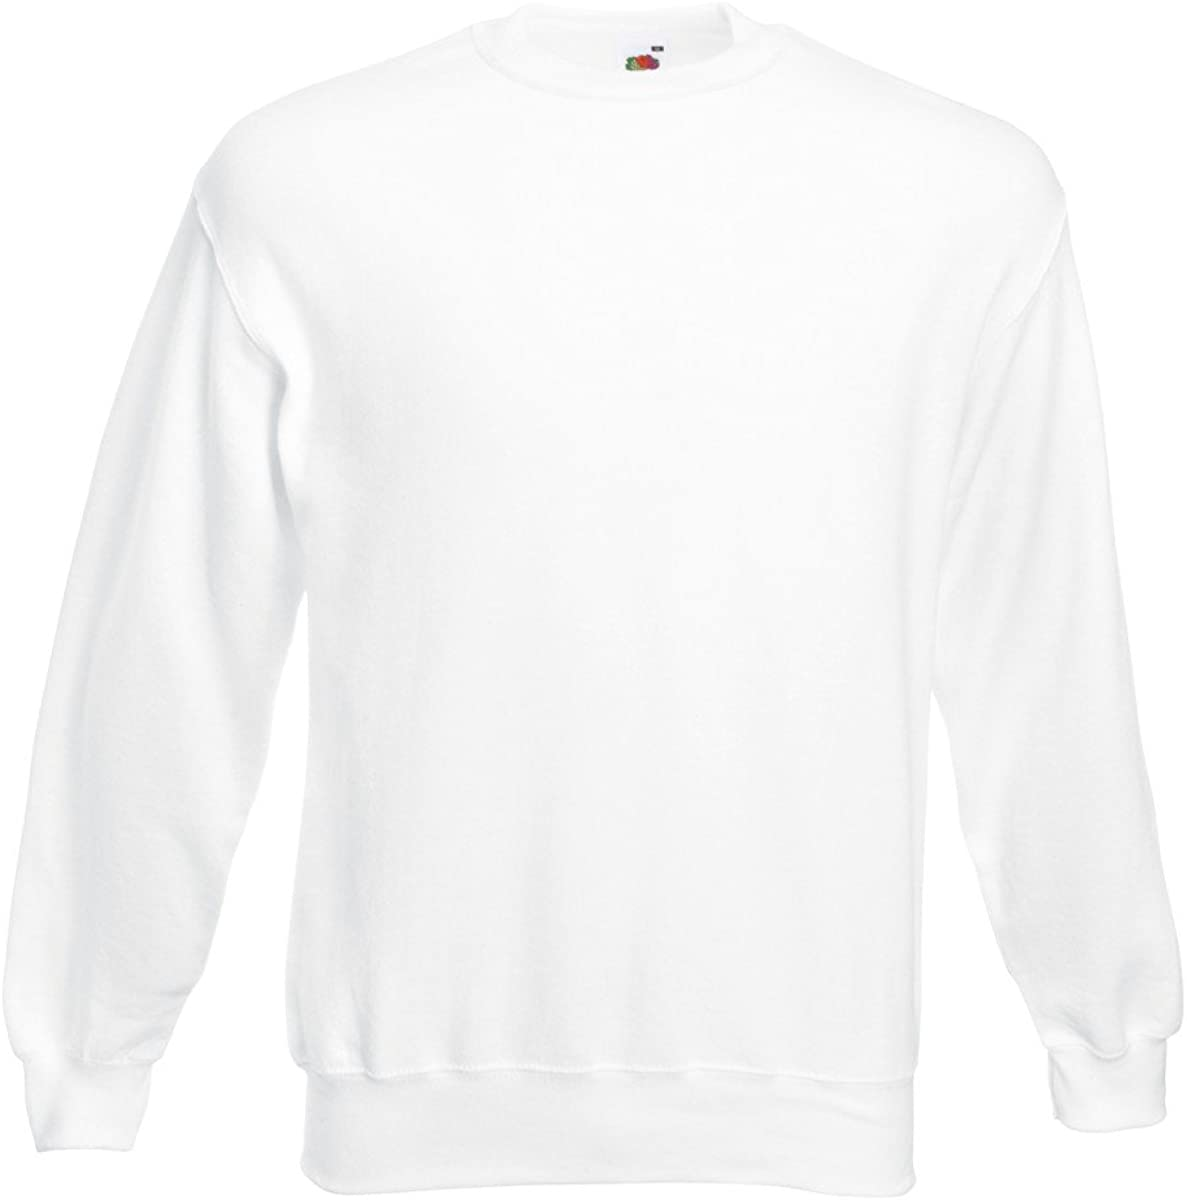 L, White Fruit of the Loom Classic Set-In Sweatshirt SS200